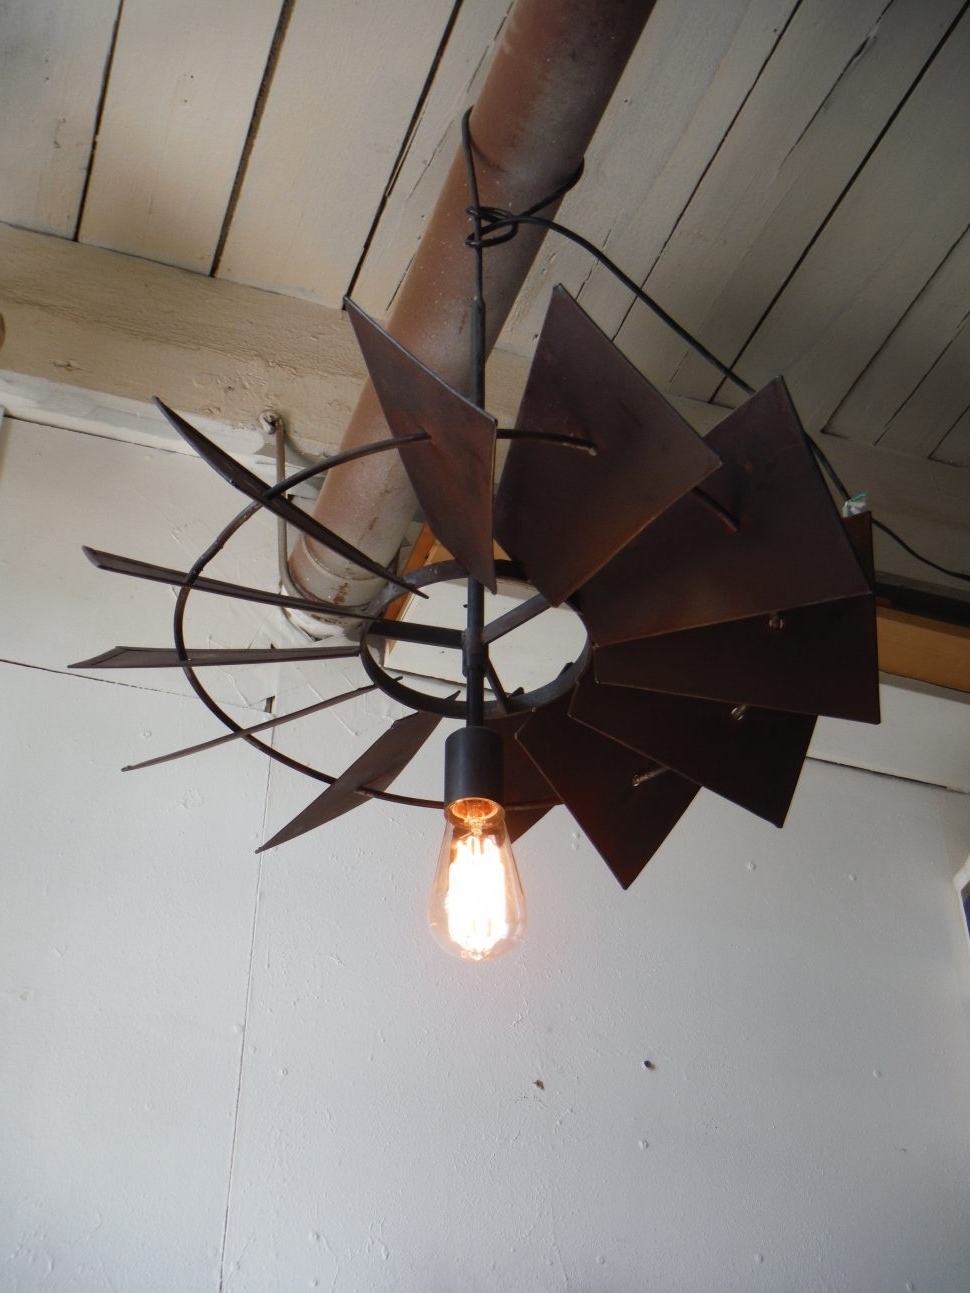 Outdoor Windmill Ceiling Fans With Light Throughout Most Recently Released Windmill Ceiling Fan With Light Kit Great Outdoor Ceiling Fan With (Gallery 2 of 20)